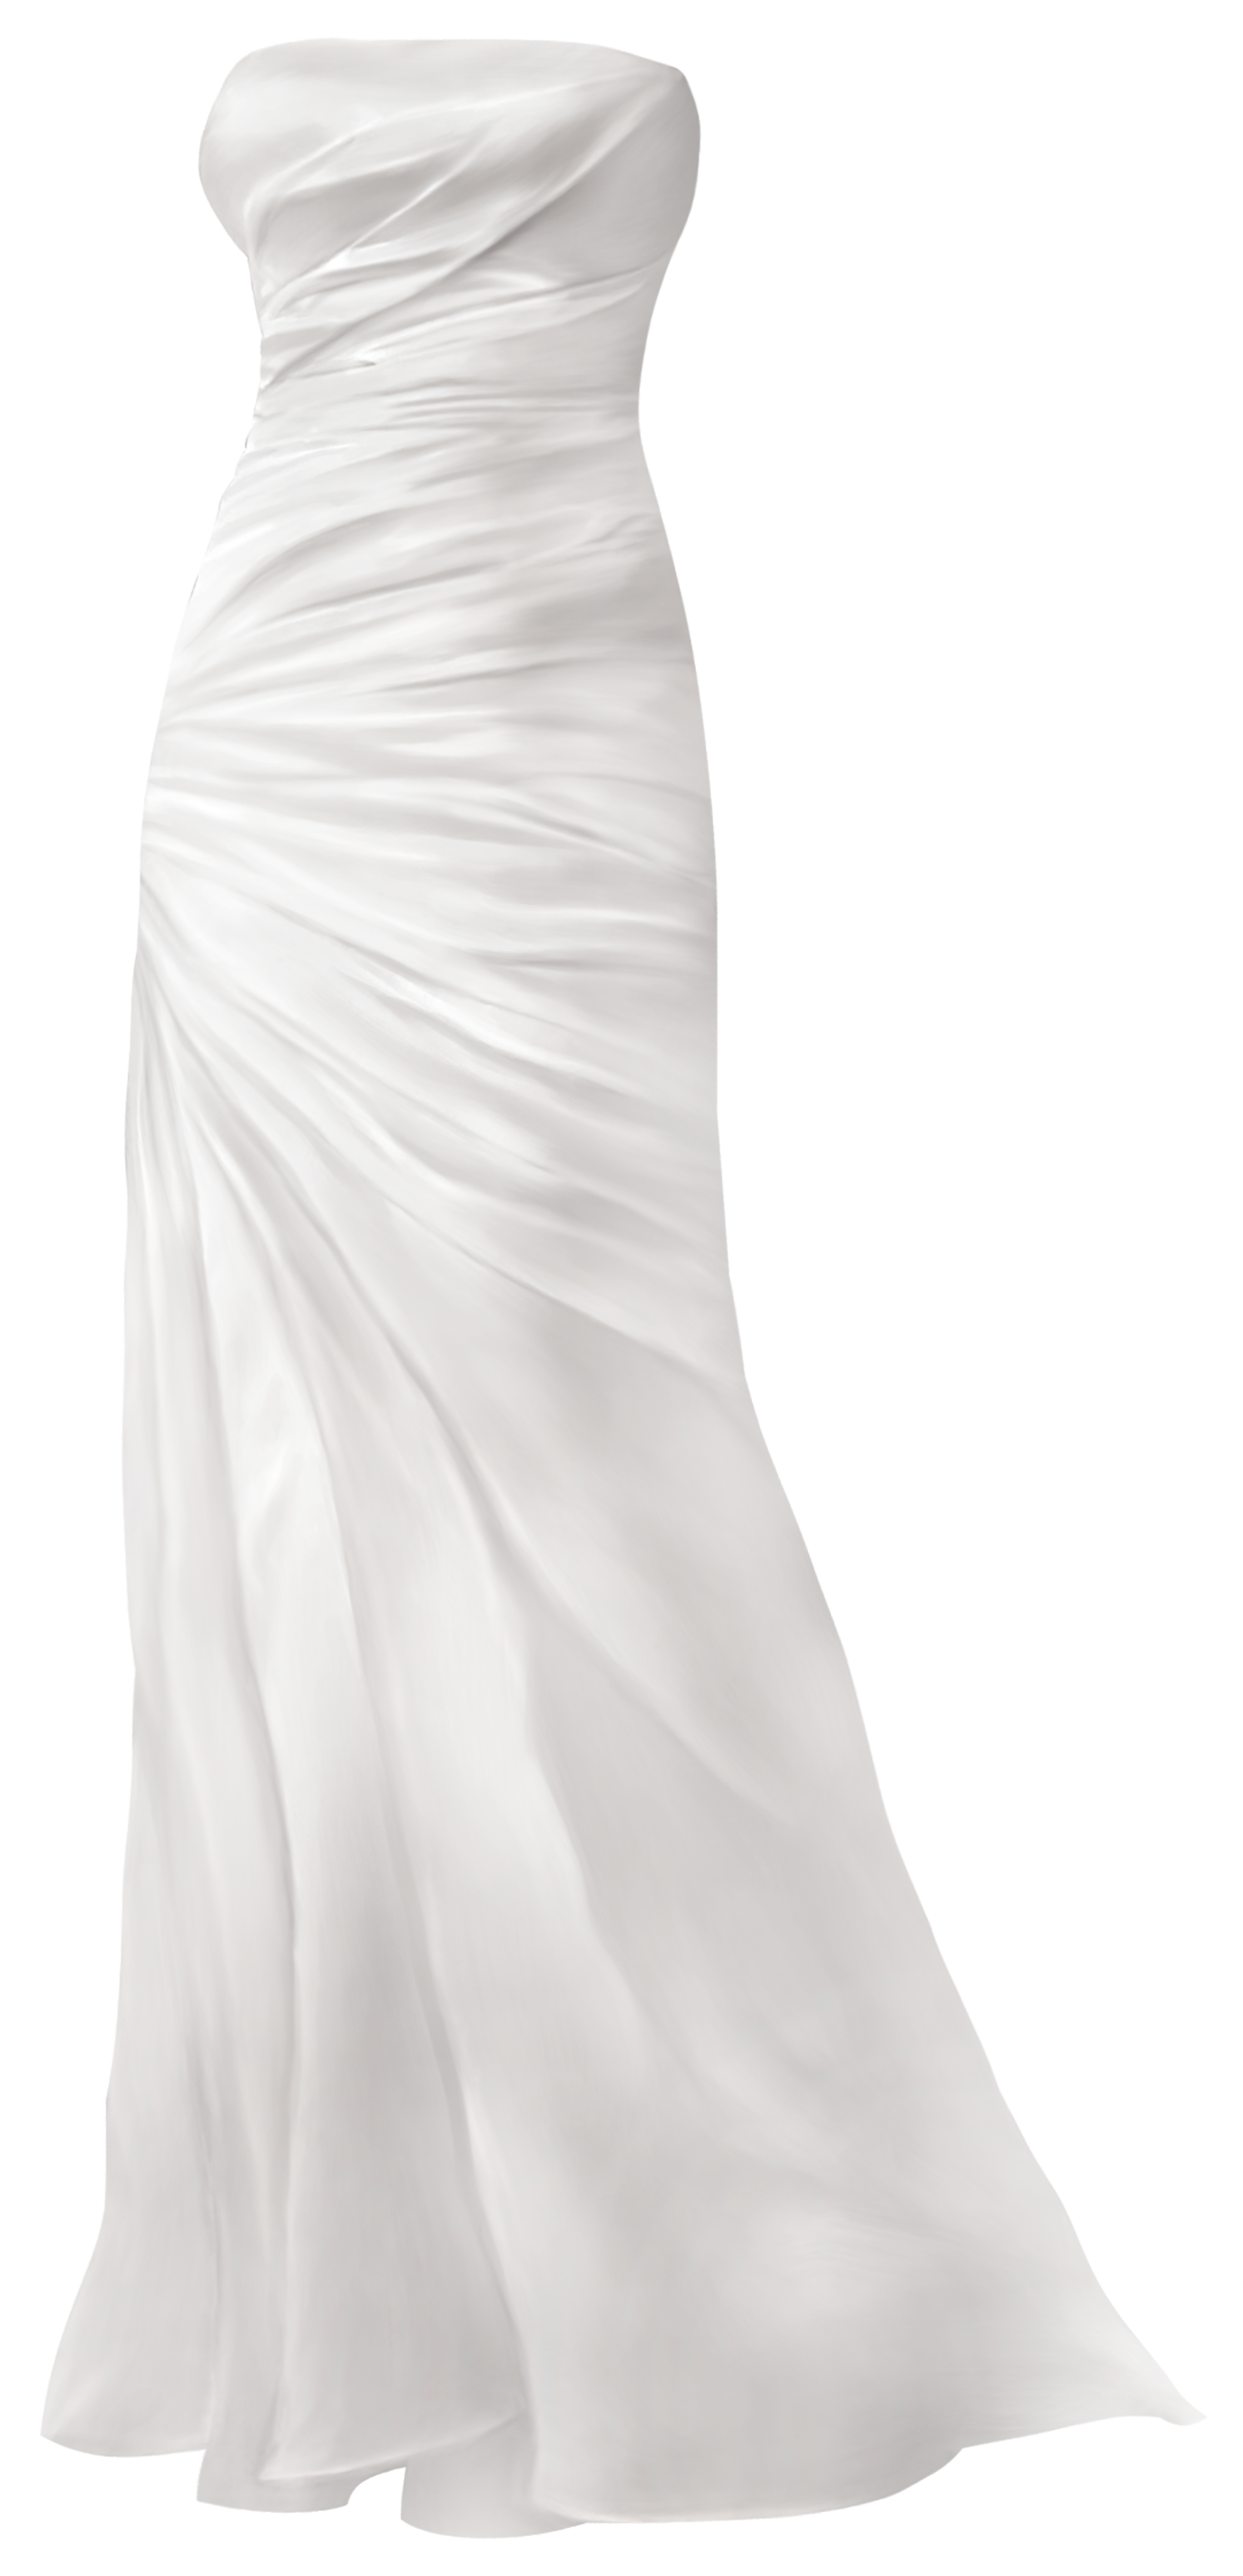 vector transparent library Simple png clip art. Gown clipart wedding dress